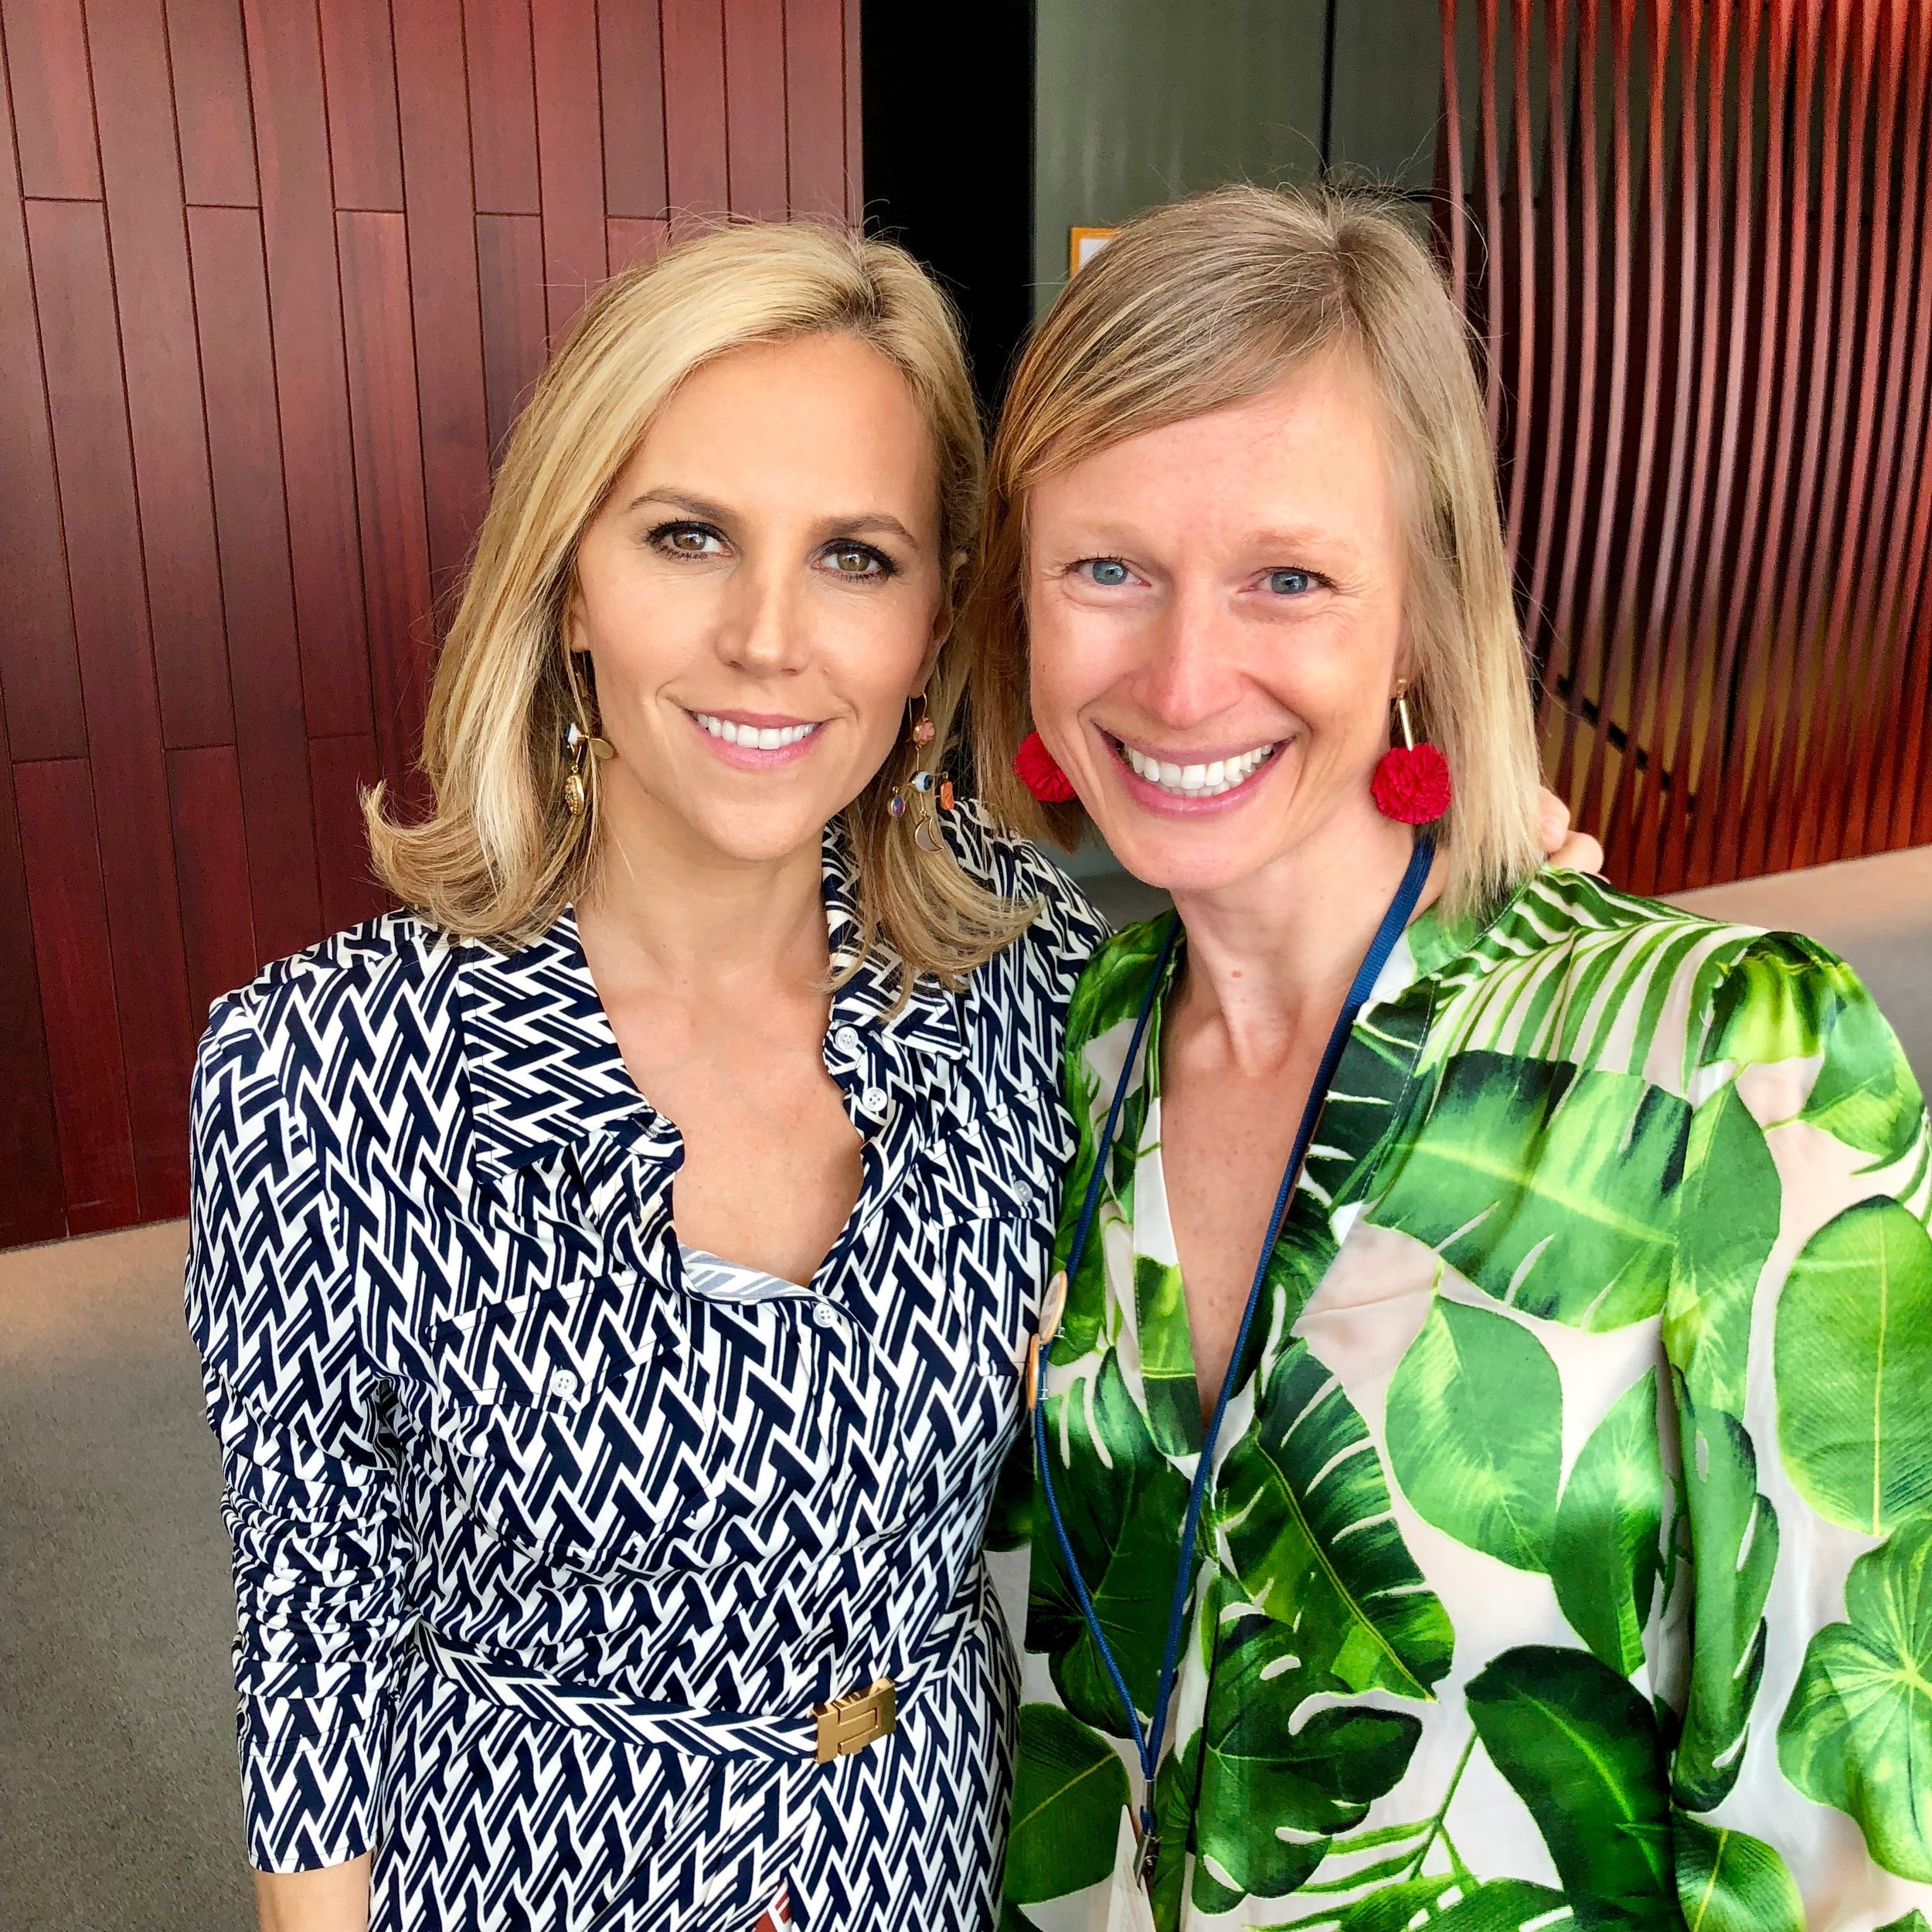 Spark Ambassador Tamara DeOrio with Tory Burch at the 2018 Embrace Ambition Summit in NYC